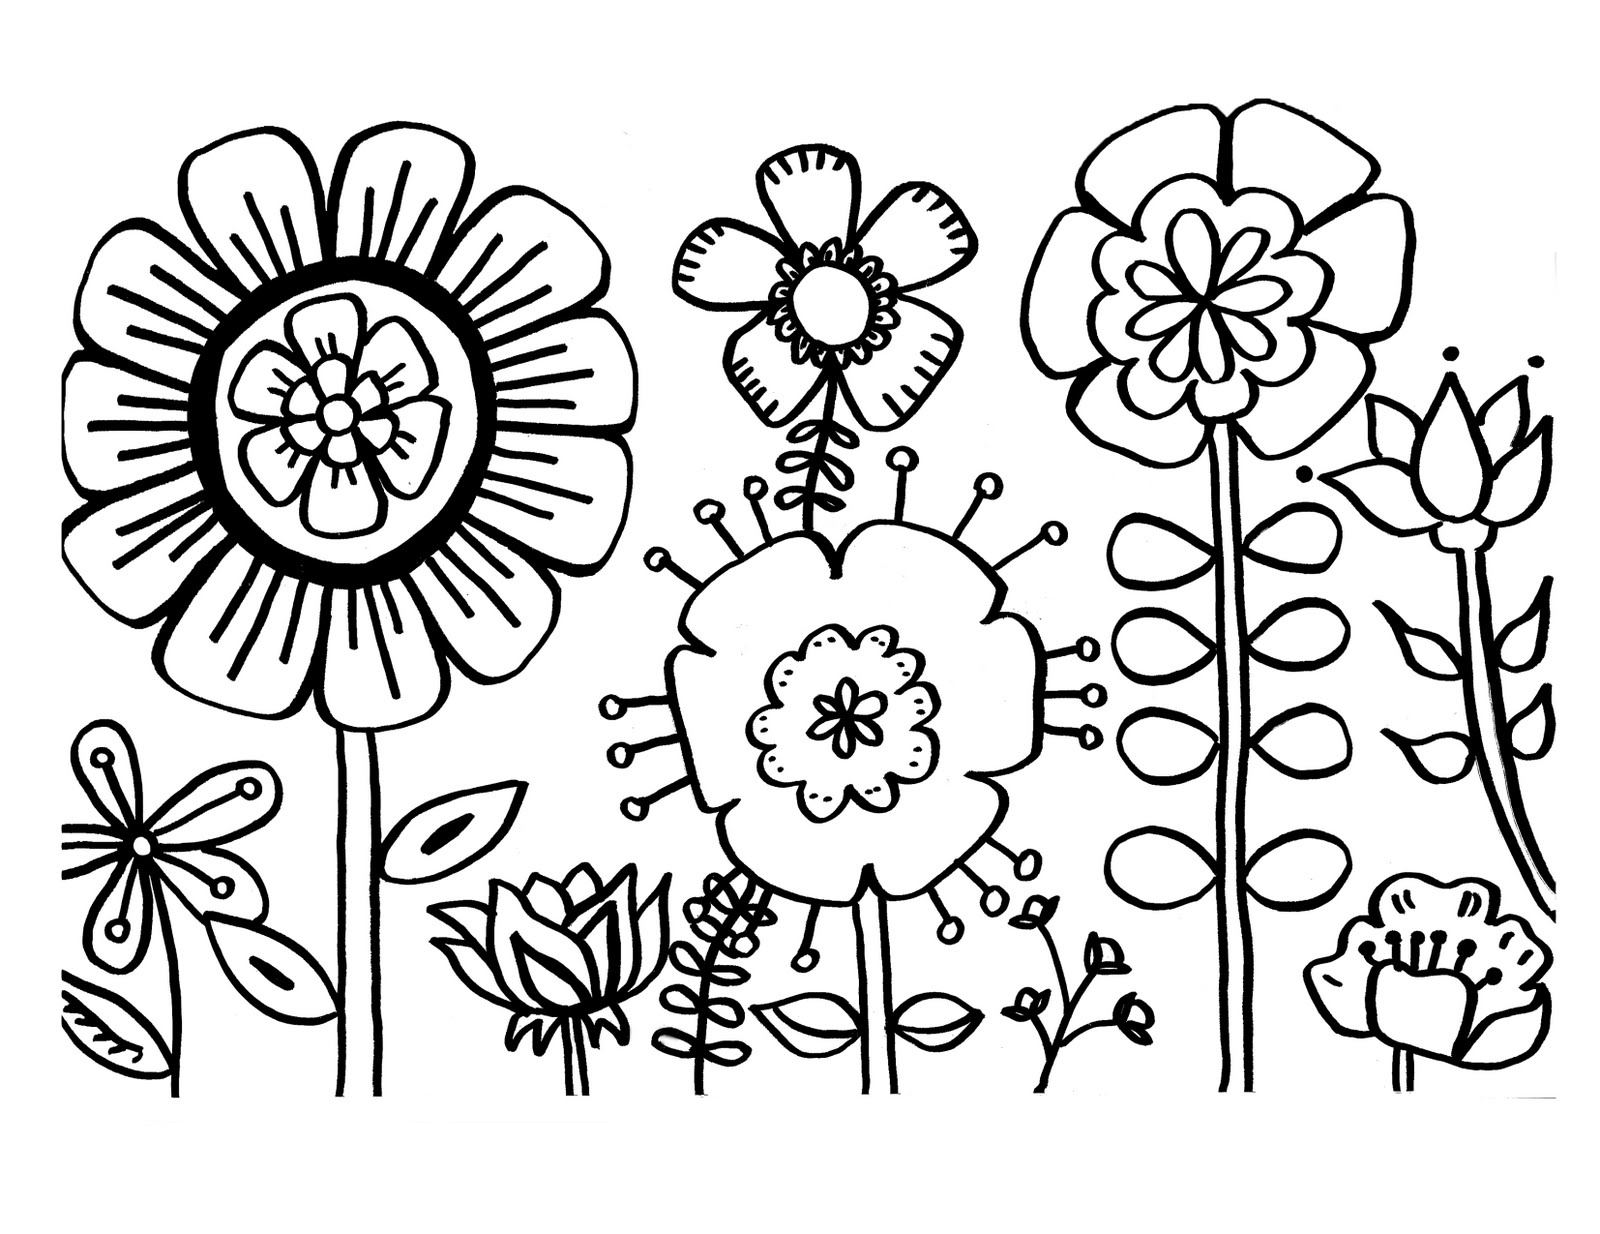 Free Printable Flower Coloring Pages Fair Free Printable Flower Coloring Pages For Kids  Best Coloring .